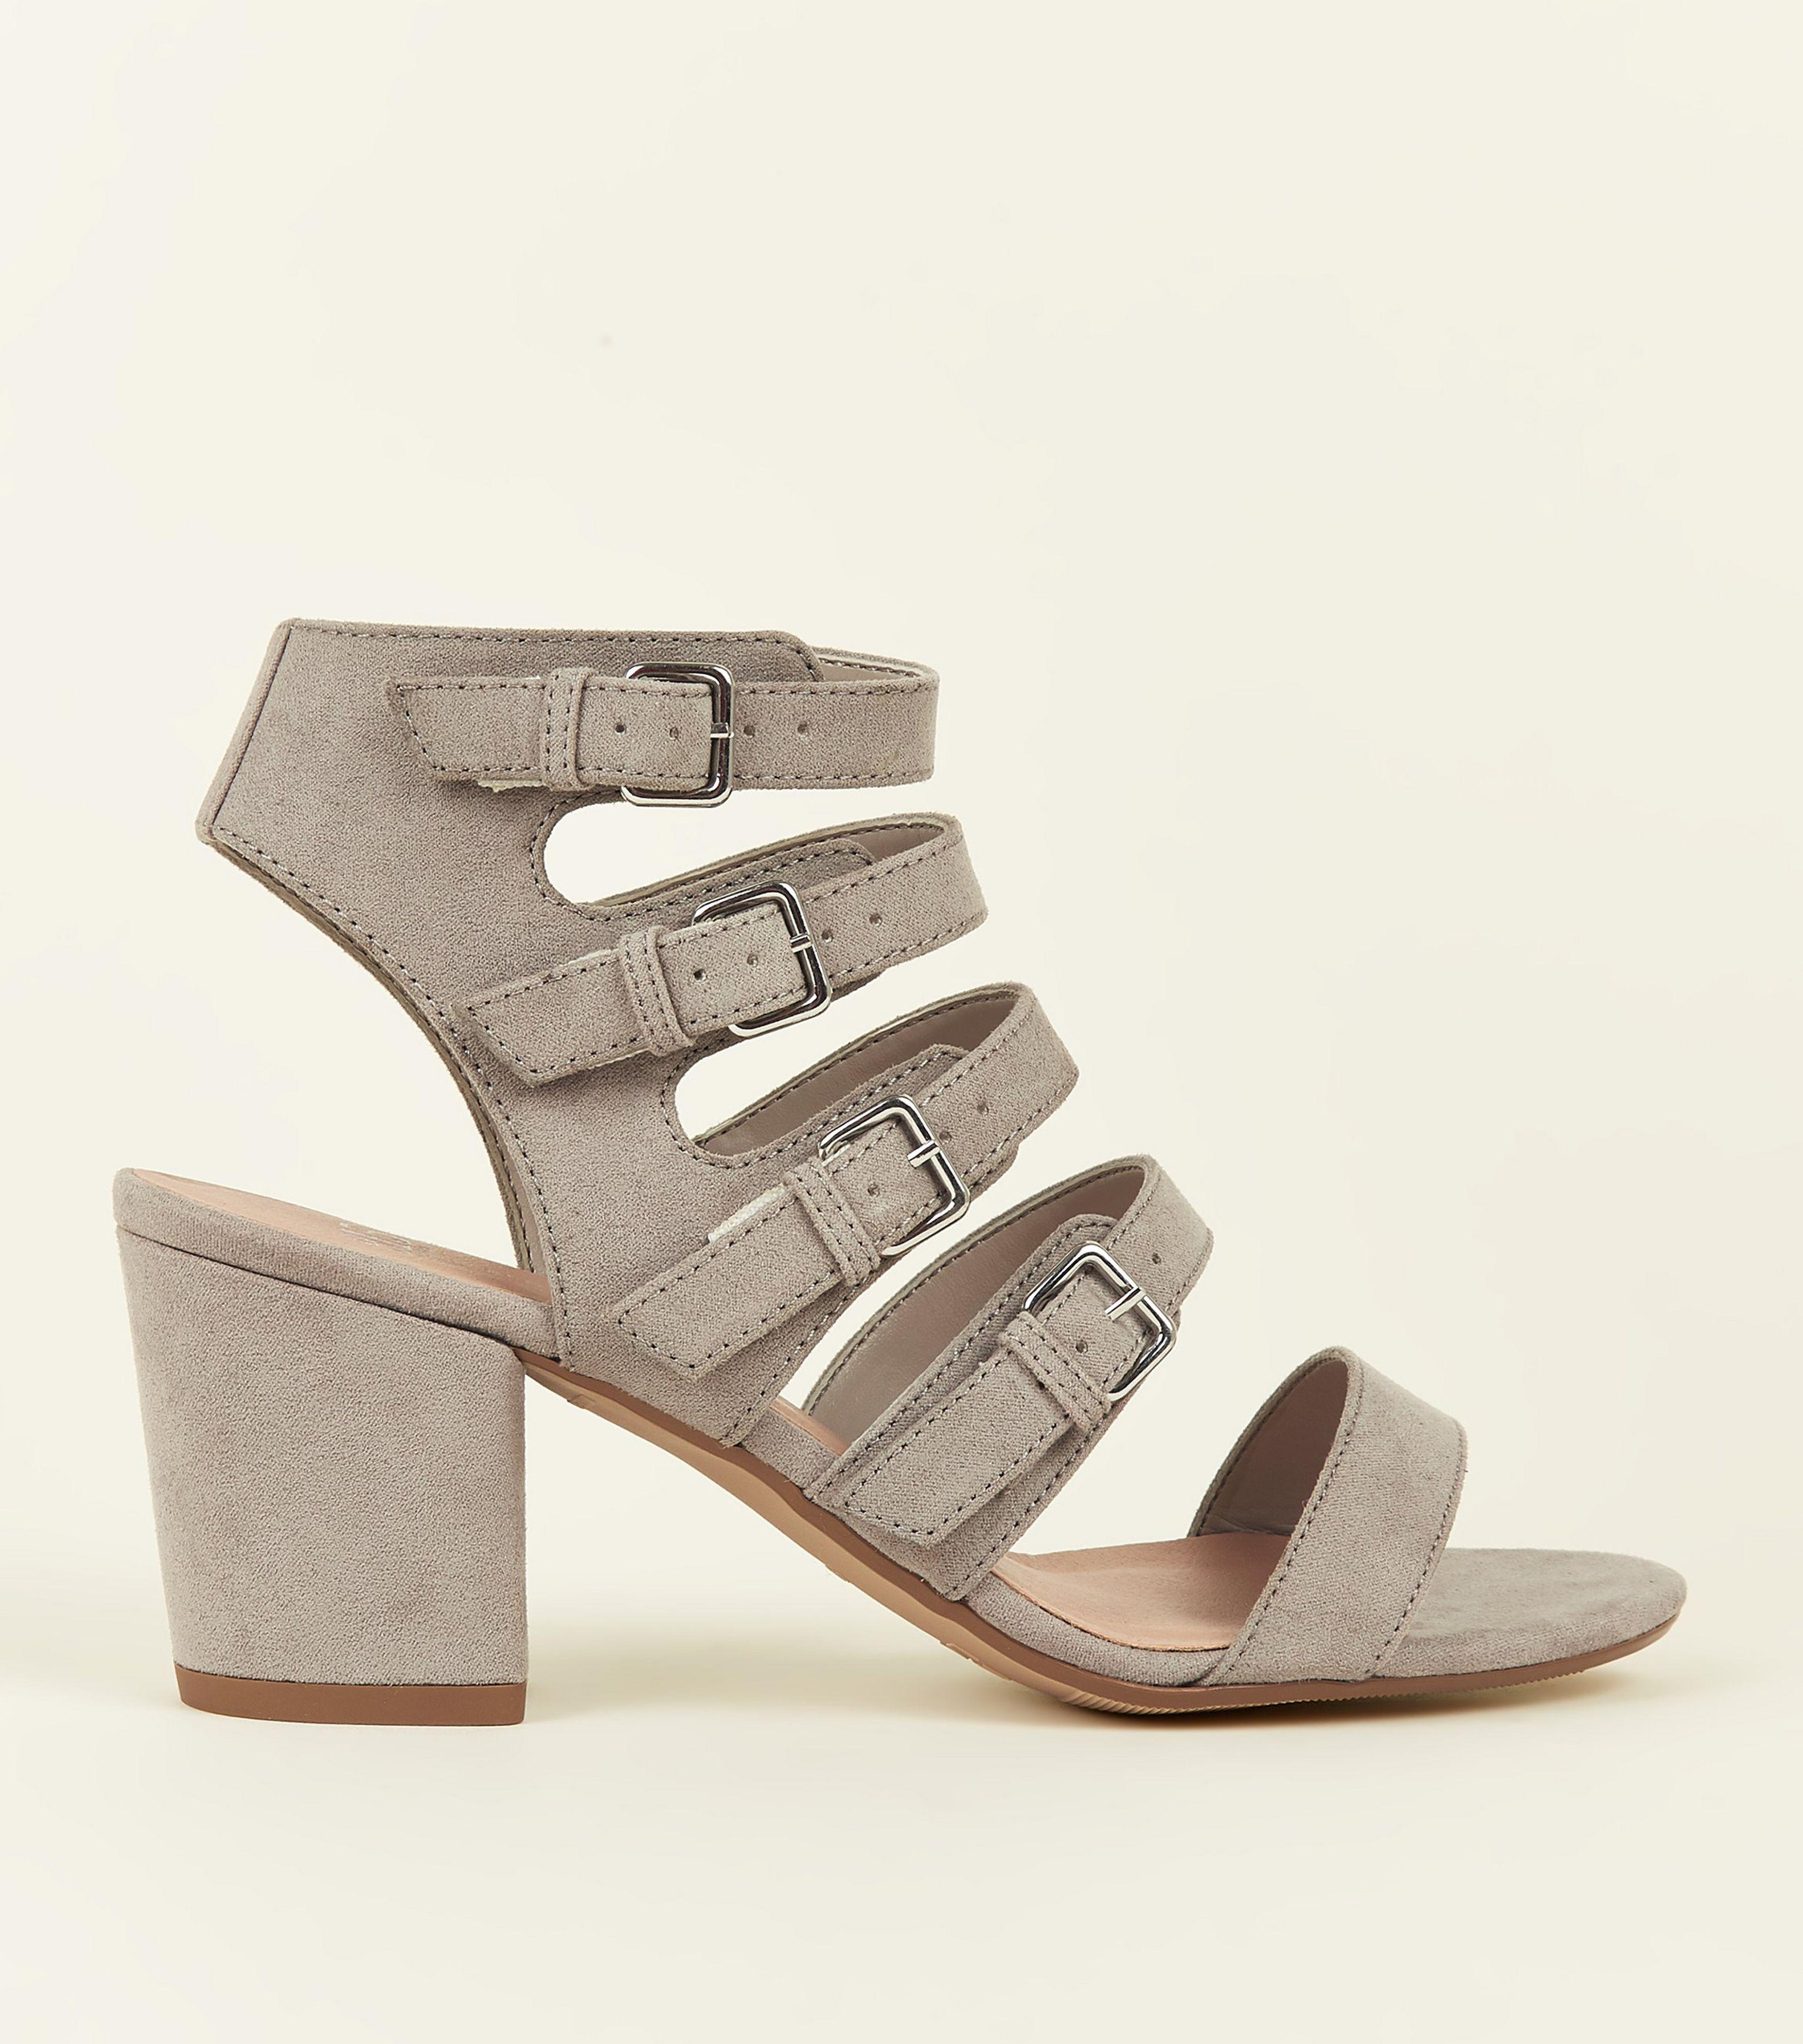 967a3b216ea New Look Girls Grey Suedette Buckle Strap Gladiator Sandals in Gray ...